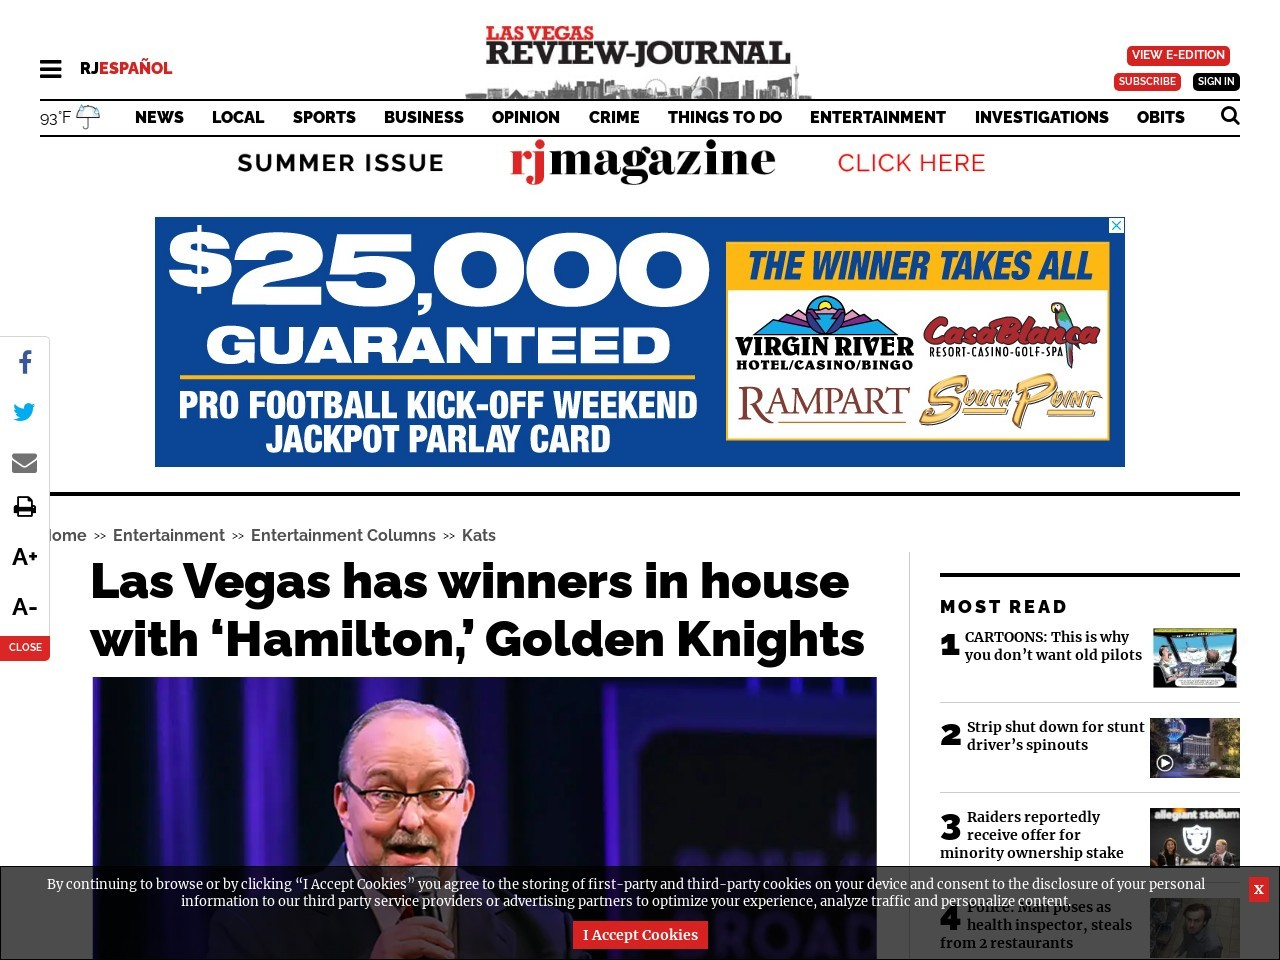 Las Vegas has winners in house with 'Hamilton,' Golden Knights